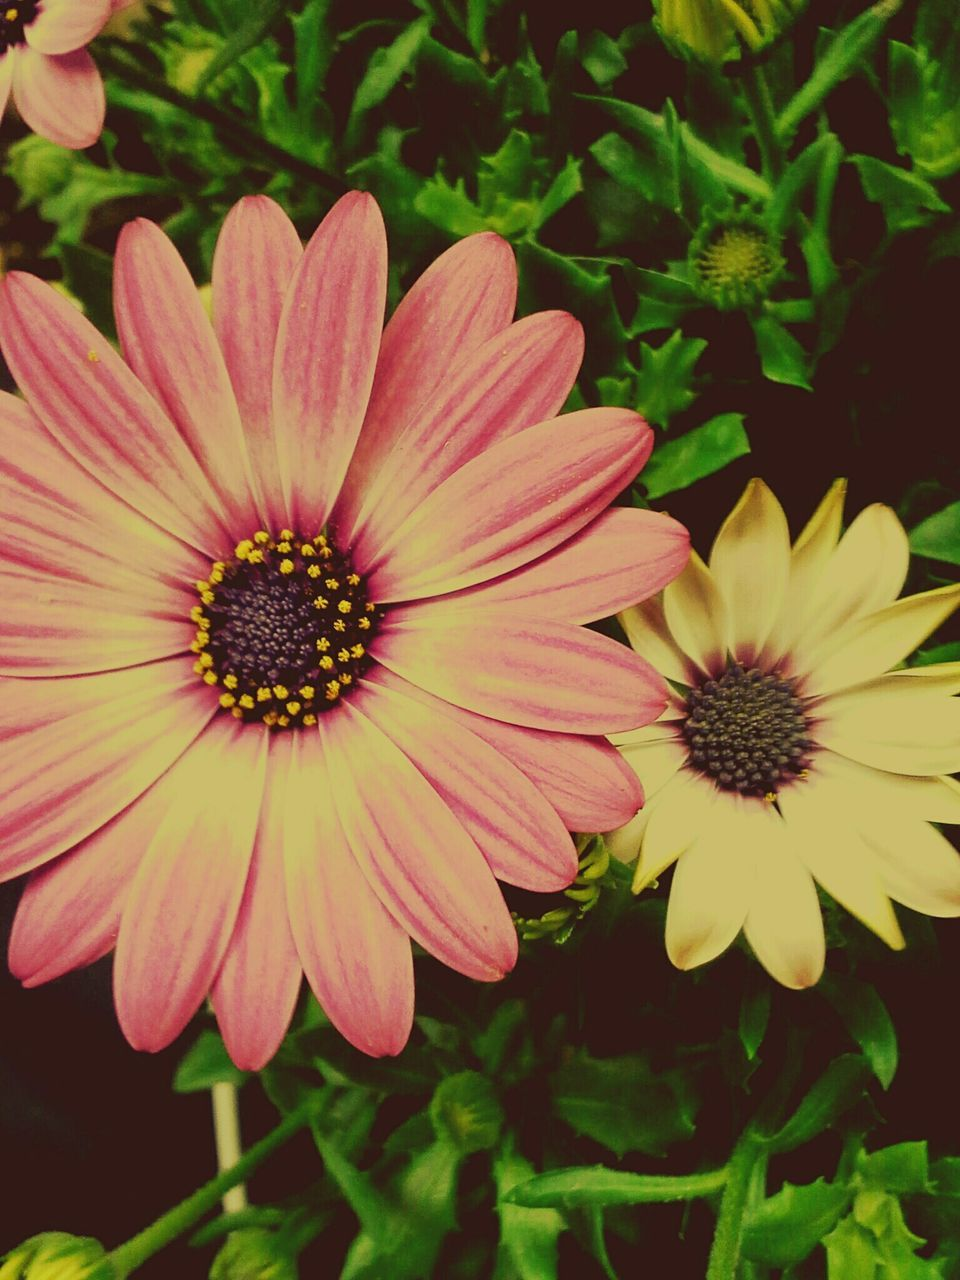 flower, petal, beauty in nature, fragility, freshness, nature, flower head, growth, plant, outdoors, blooming, no people, close-up, day, osteospermum